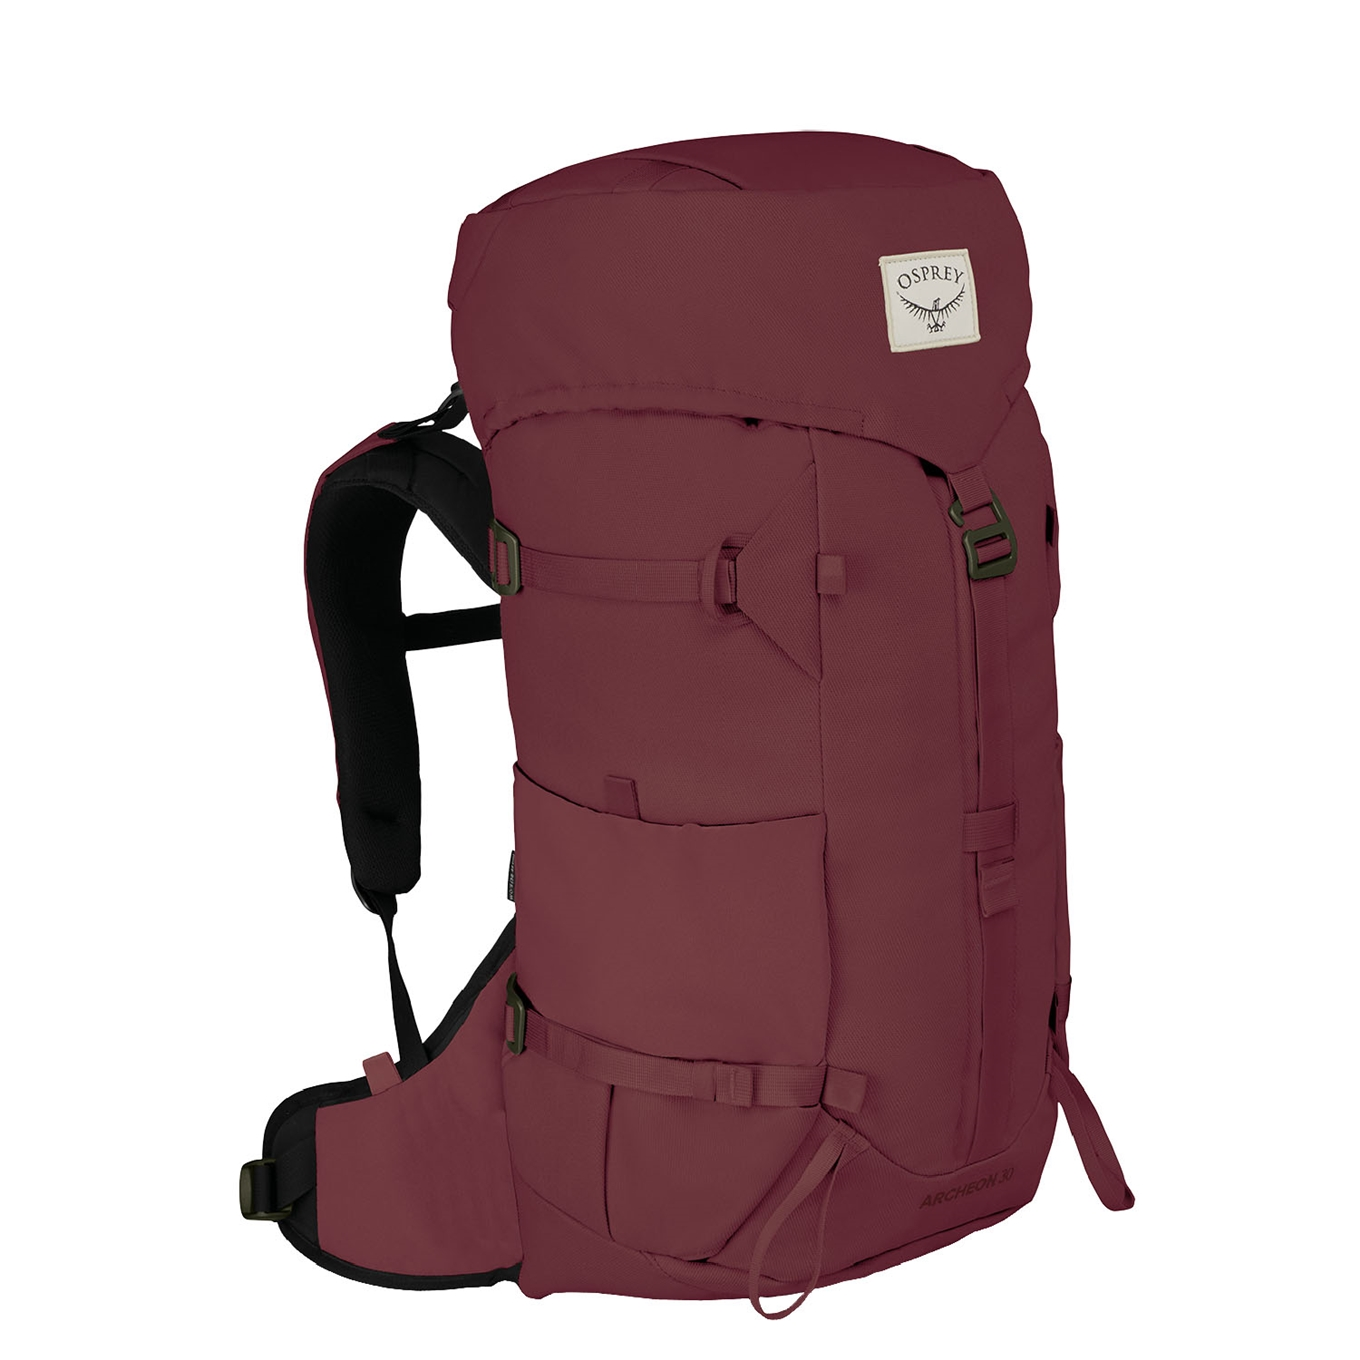 Osprey Archeon 30 Womens Backpack mud red backpack <br/></noscript><img class=